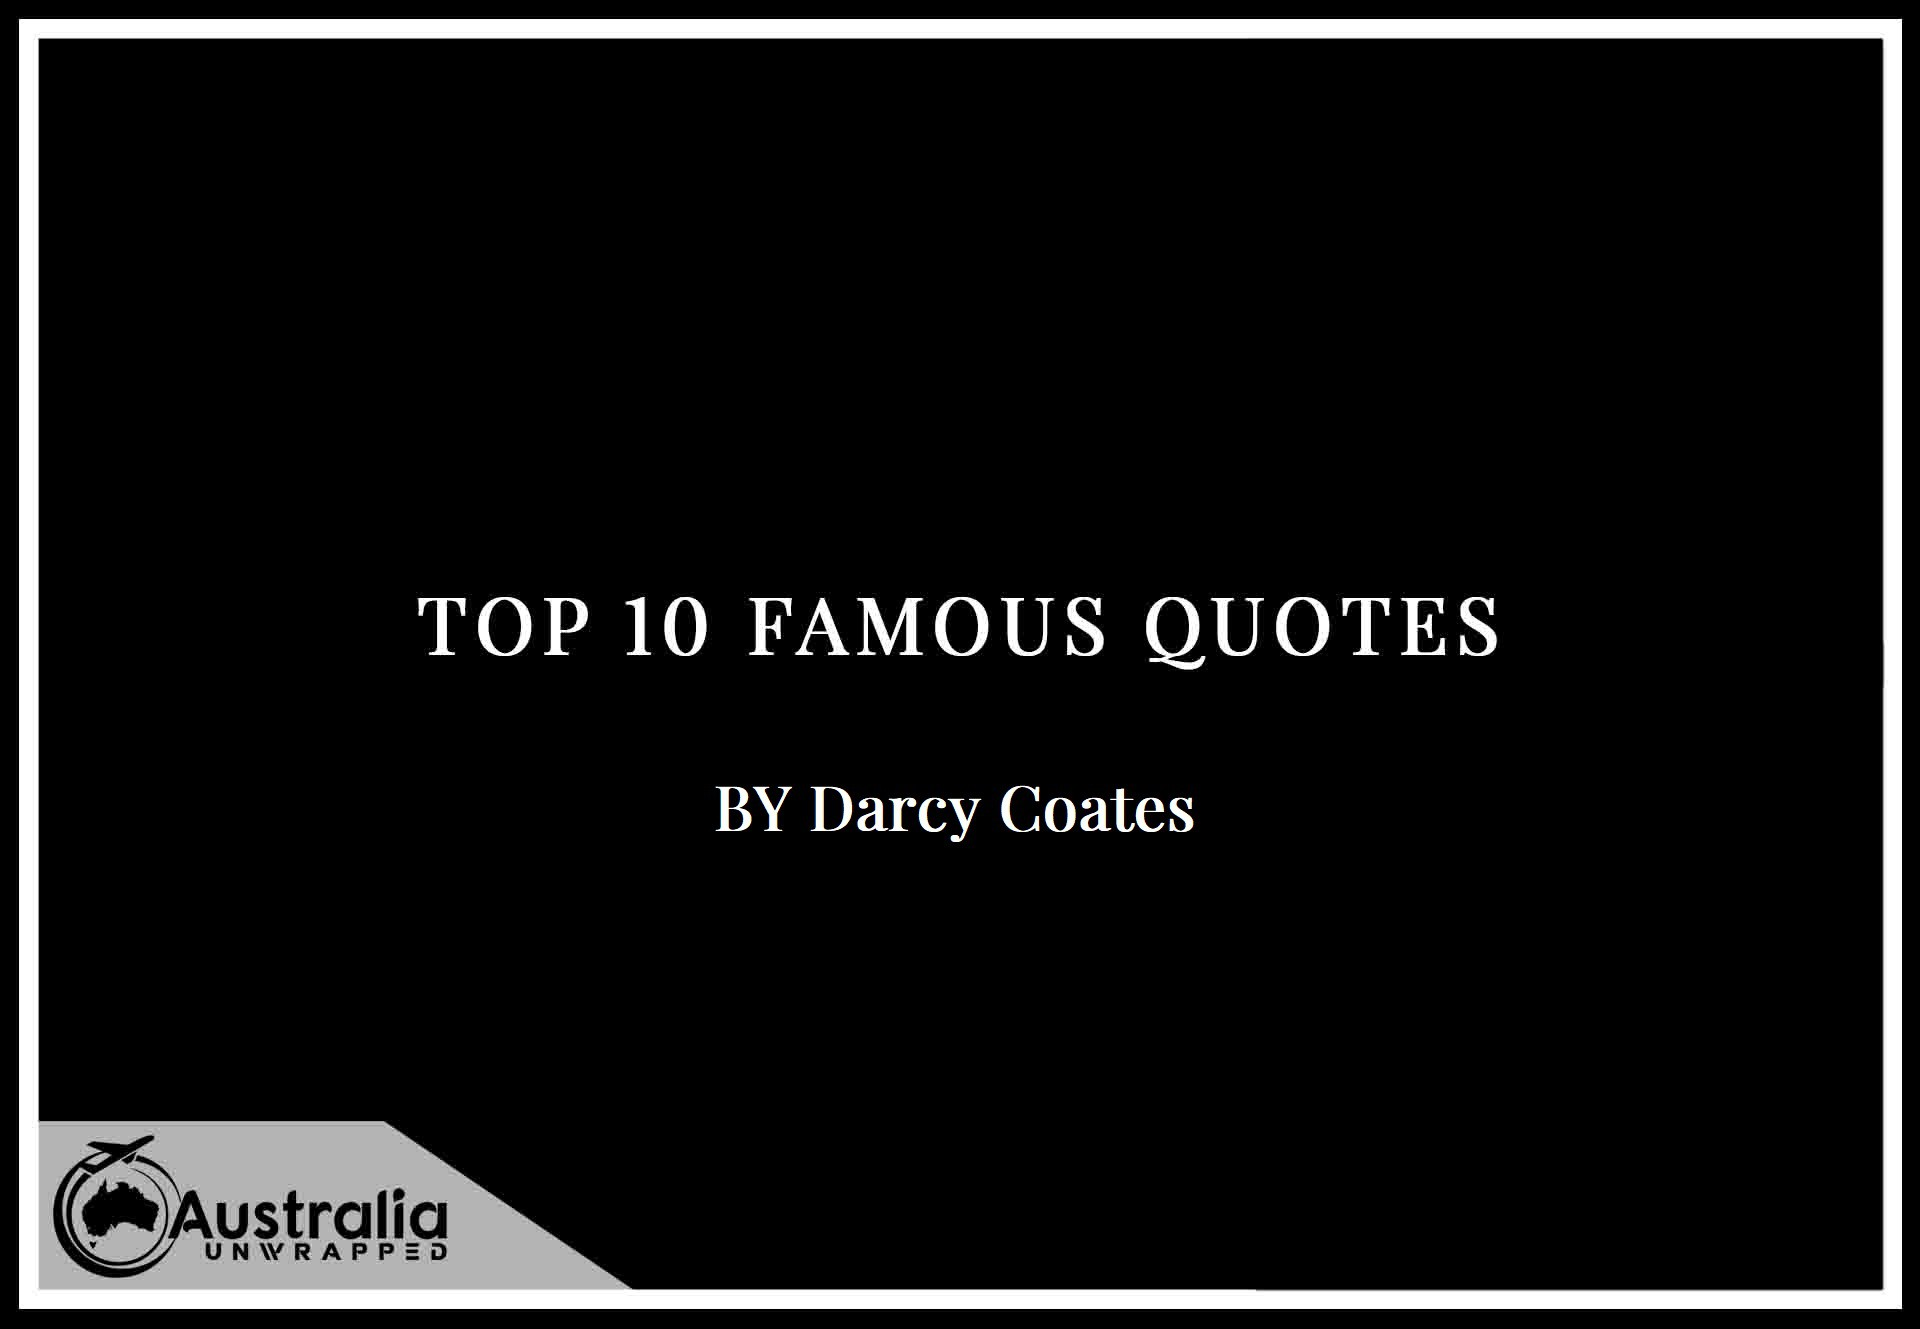 Top 10 Famous Quotes by Author Darcy Coates